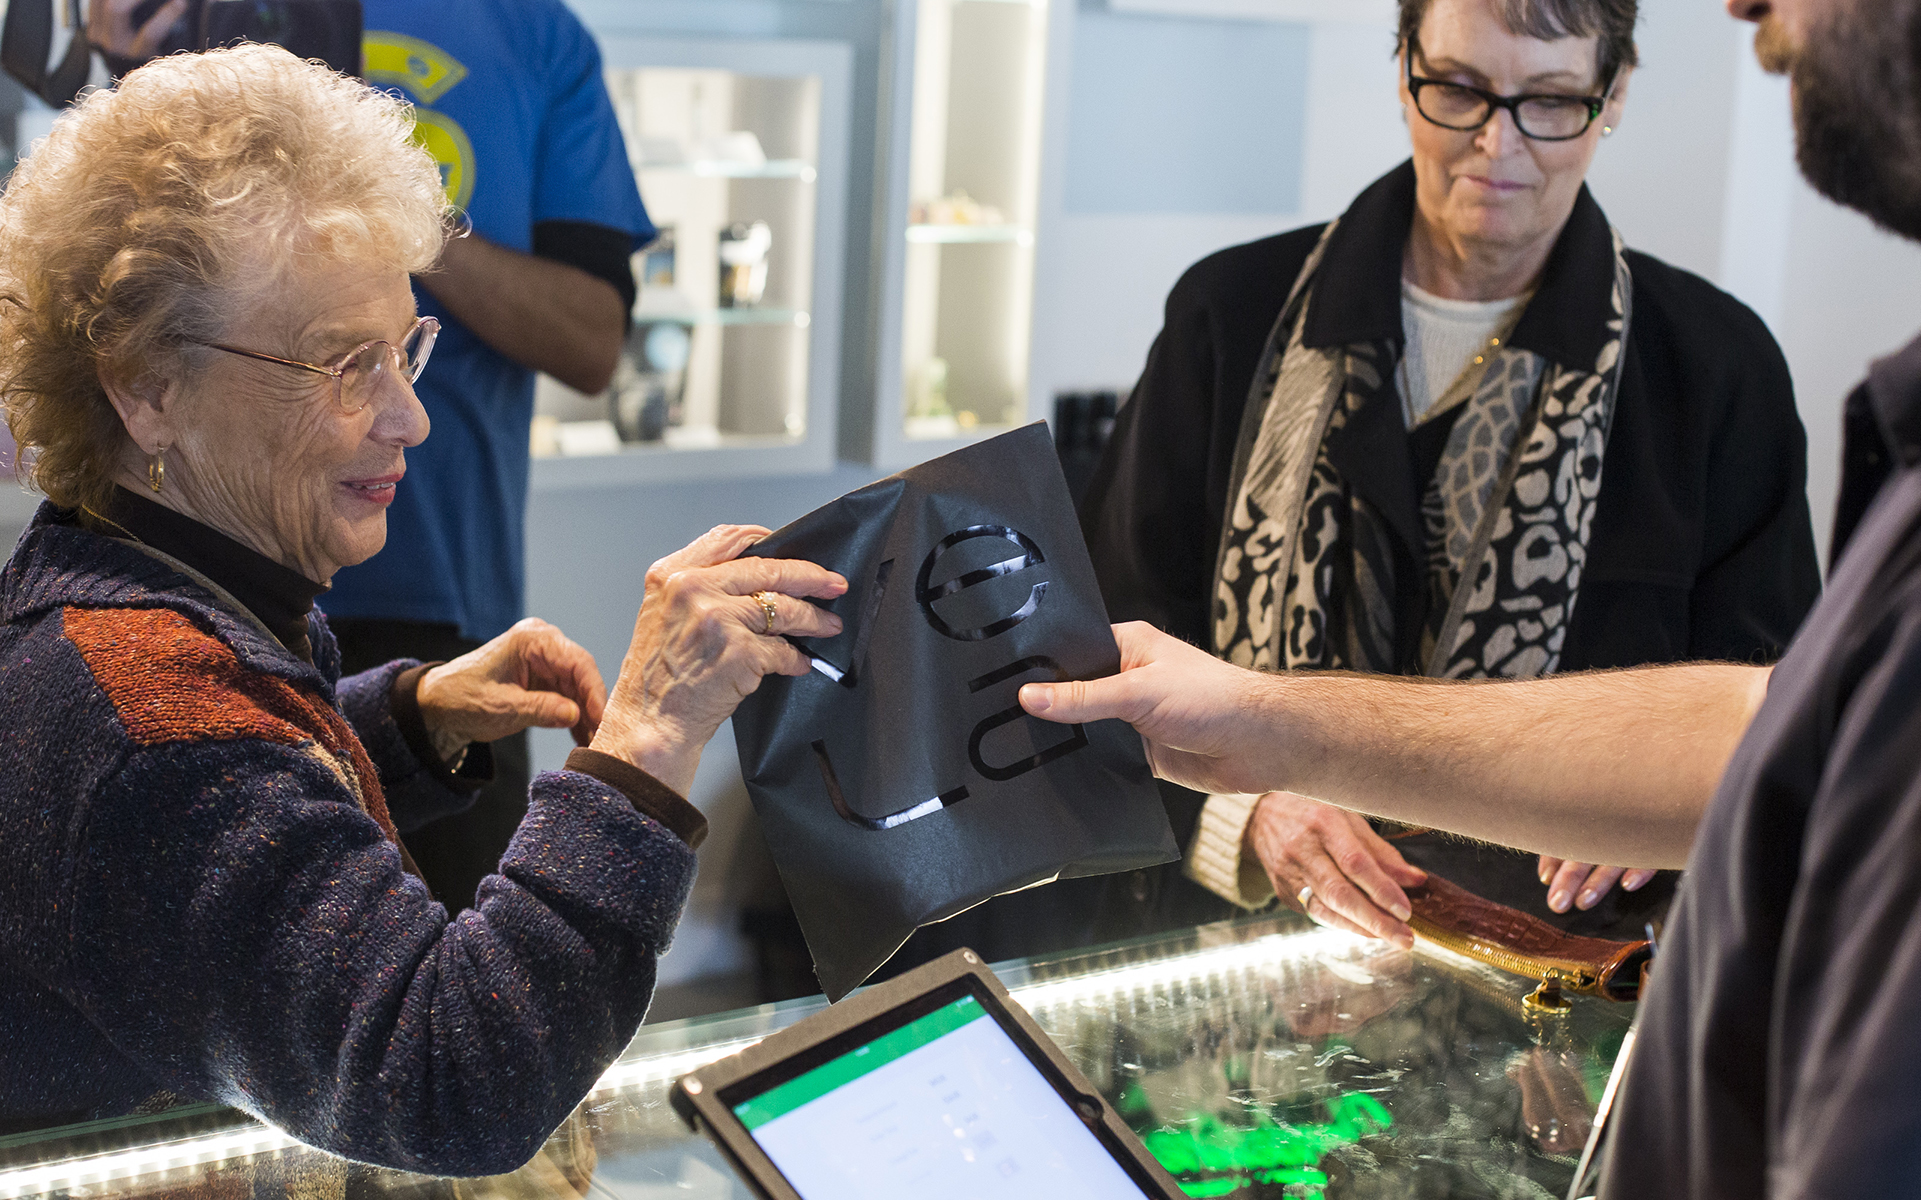 When Seniors Visit a Cannabis Store, There are Questions Aplenty   Leafly